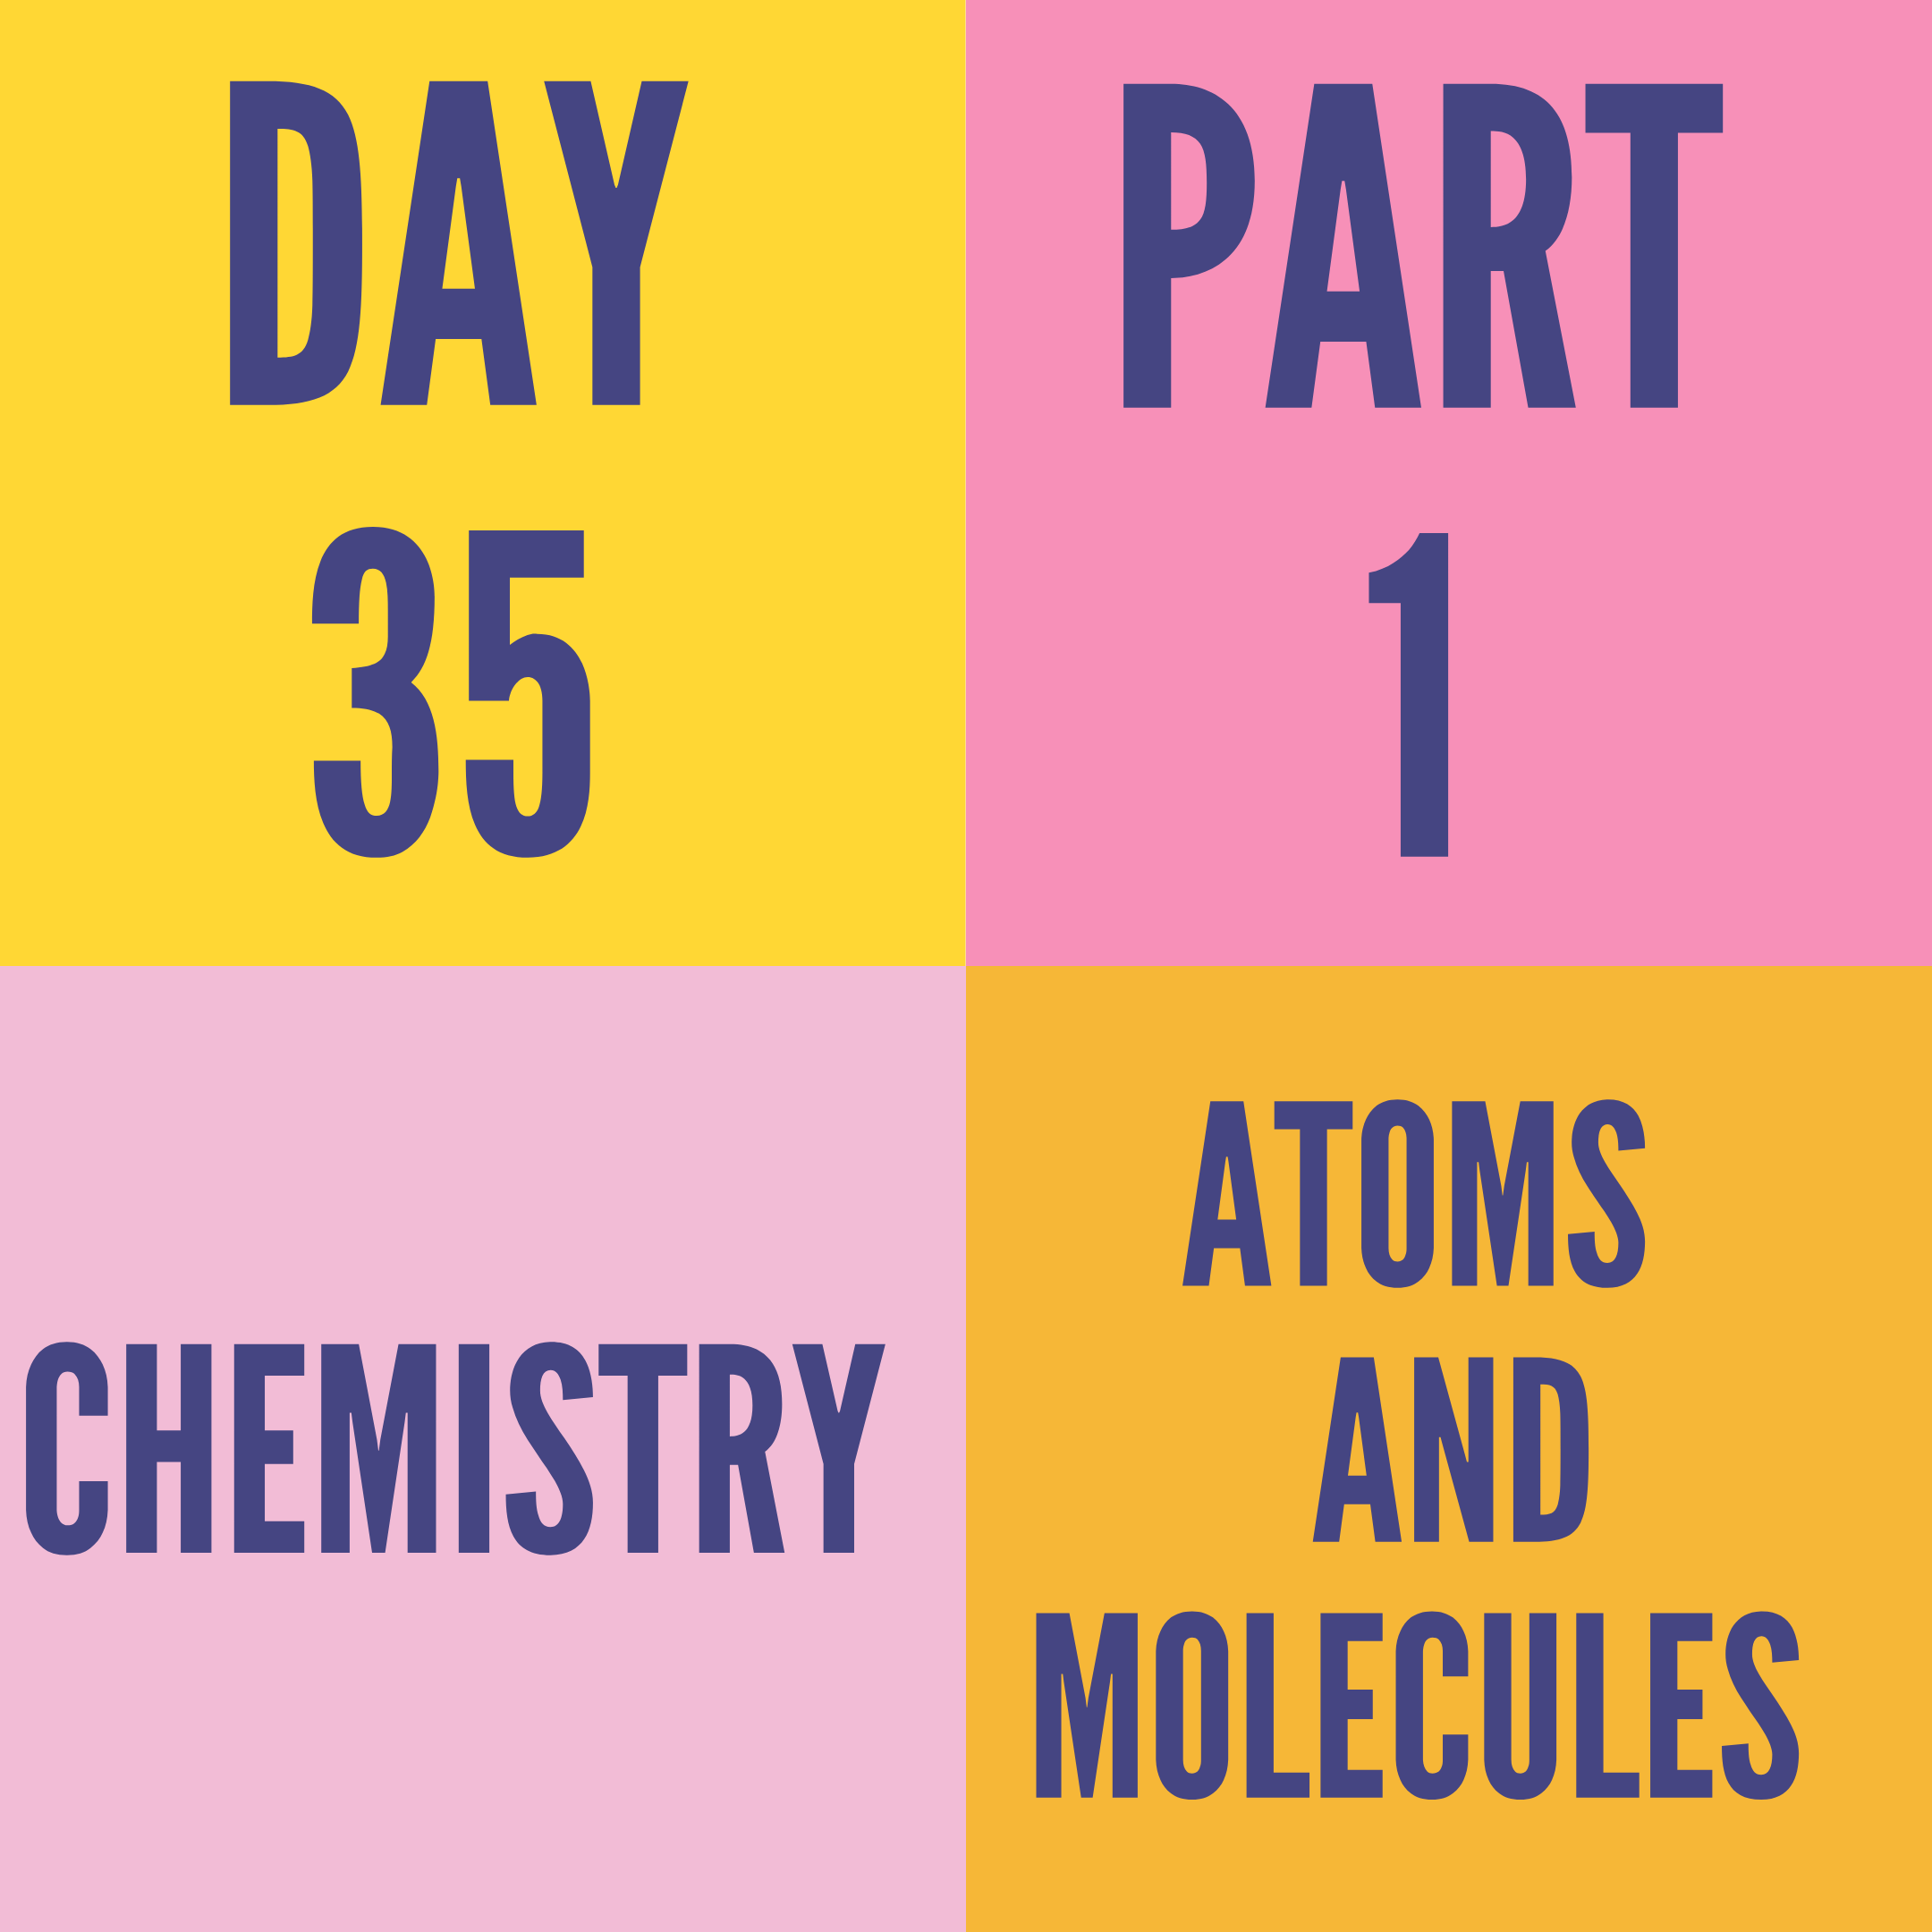 DAY-35 PART-1 ATOMS AND MOLECULES